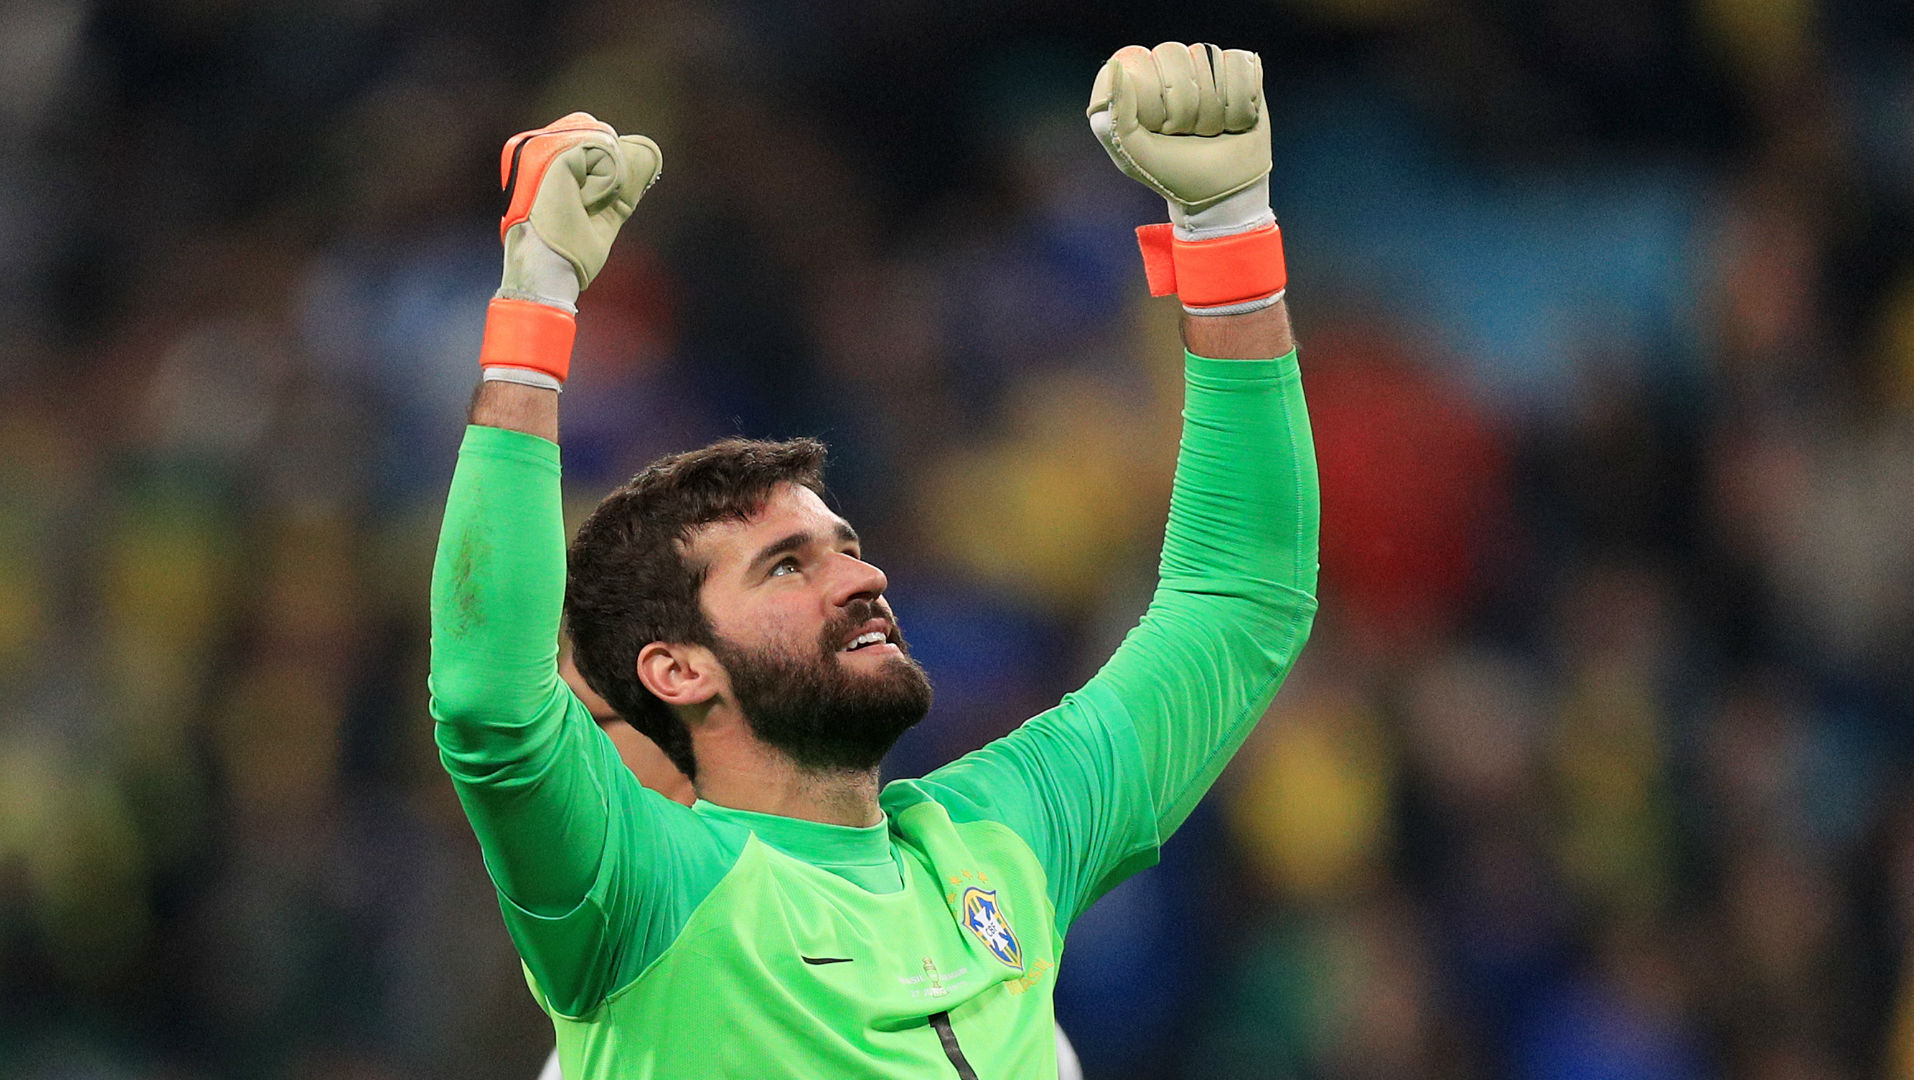 Best goalkeeper in the world! Unbeatable Alisson close to double title glory